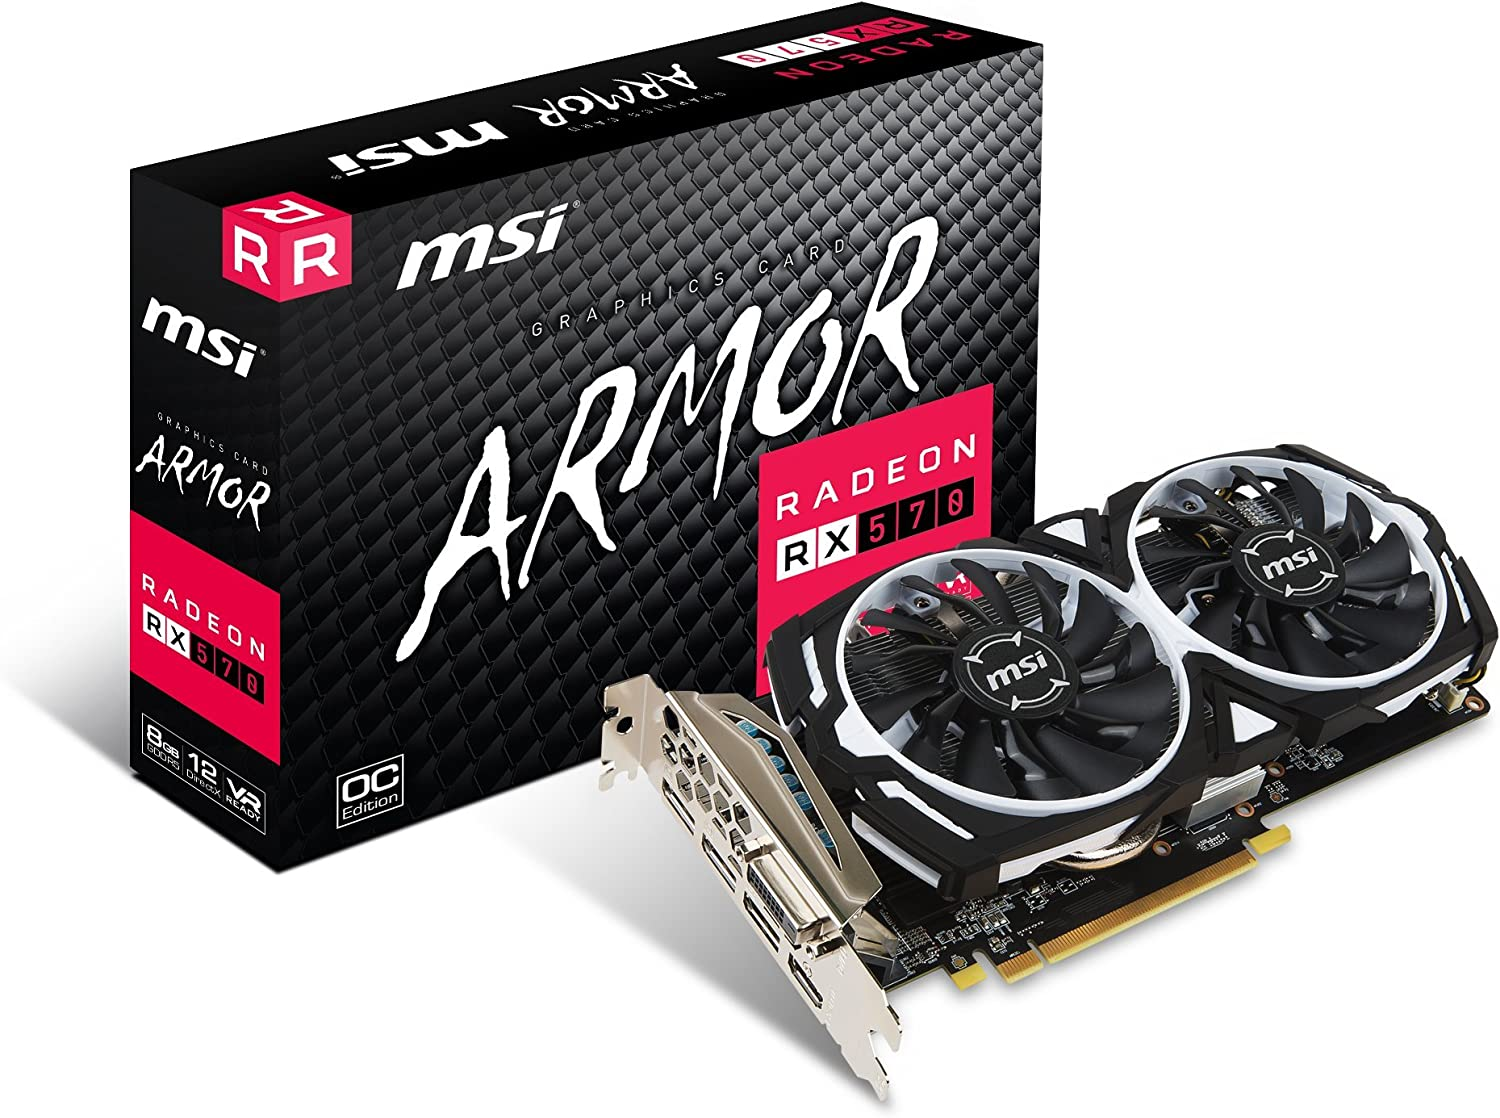 MSI Gaming Radeon RX 570 256-bit 8GB GDRR5 DirectX 12 VR Ready CFX Graphcis Card (RX 570 ARMOR 8G OC) (Renewed)